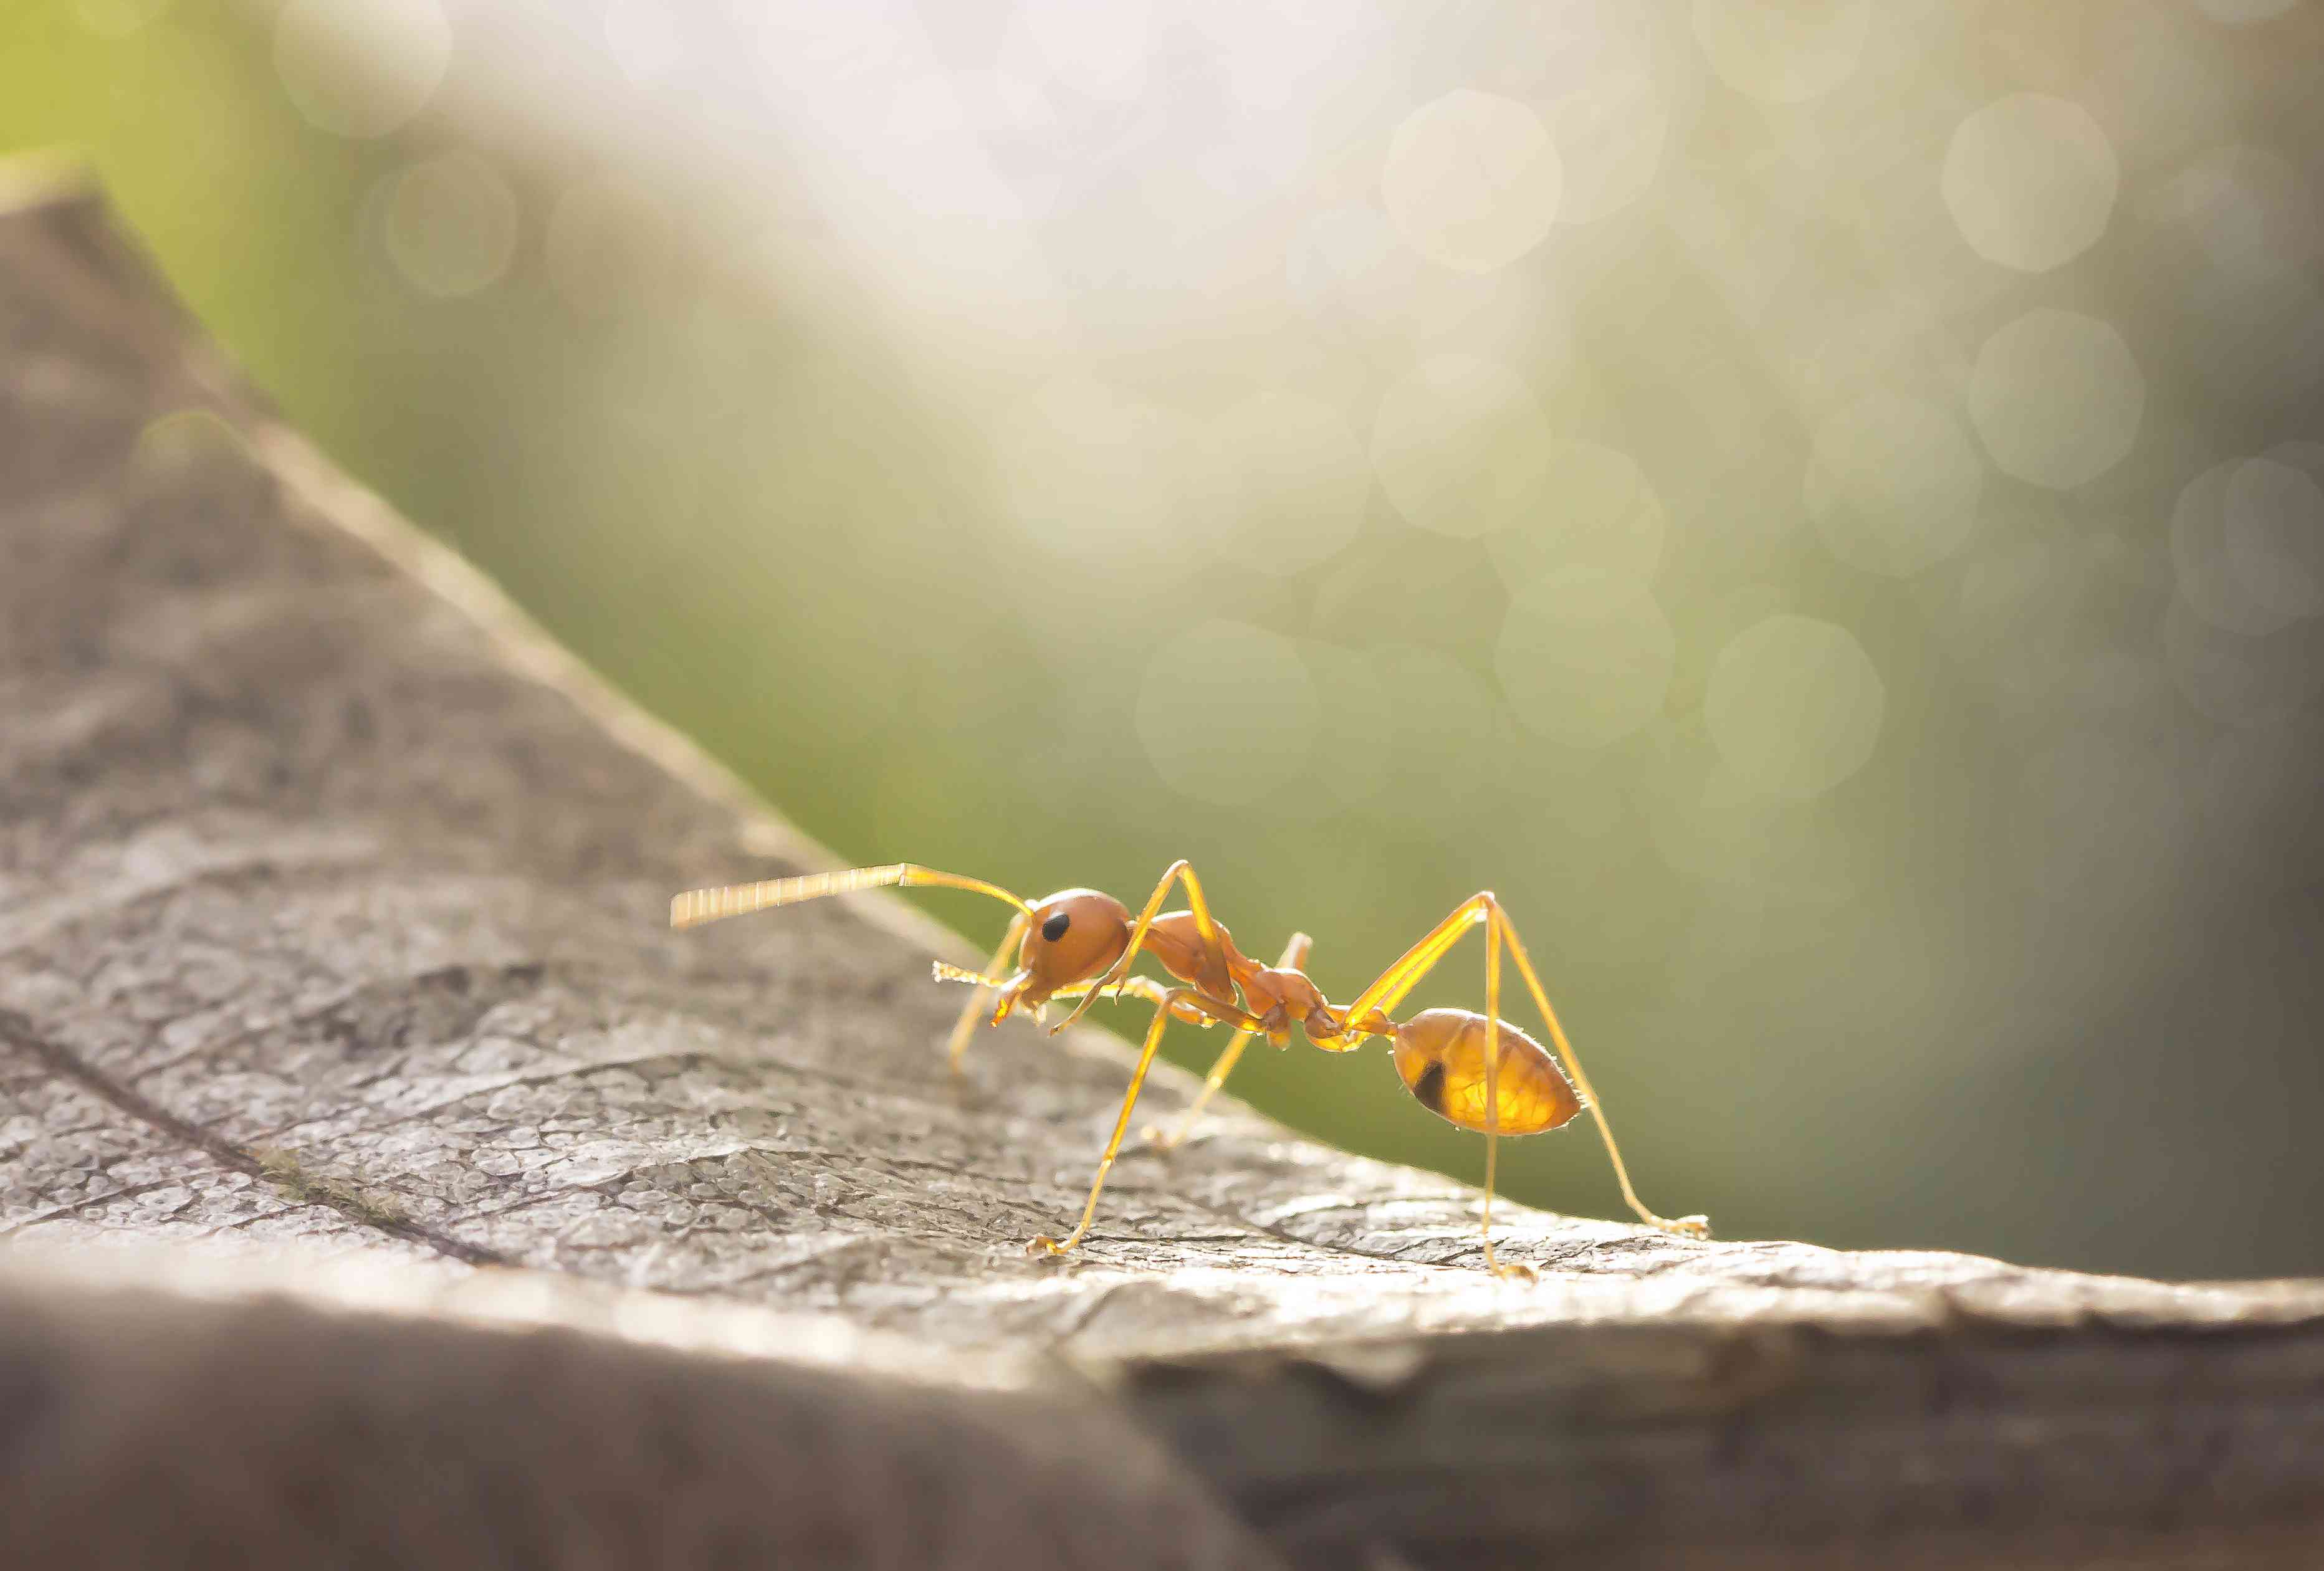 Leafcutter ant in the sun